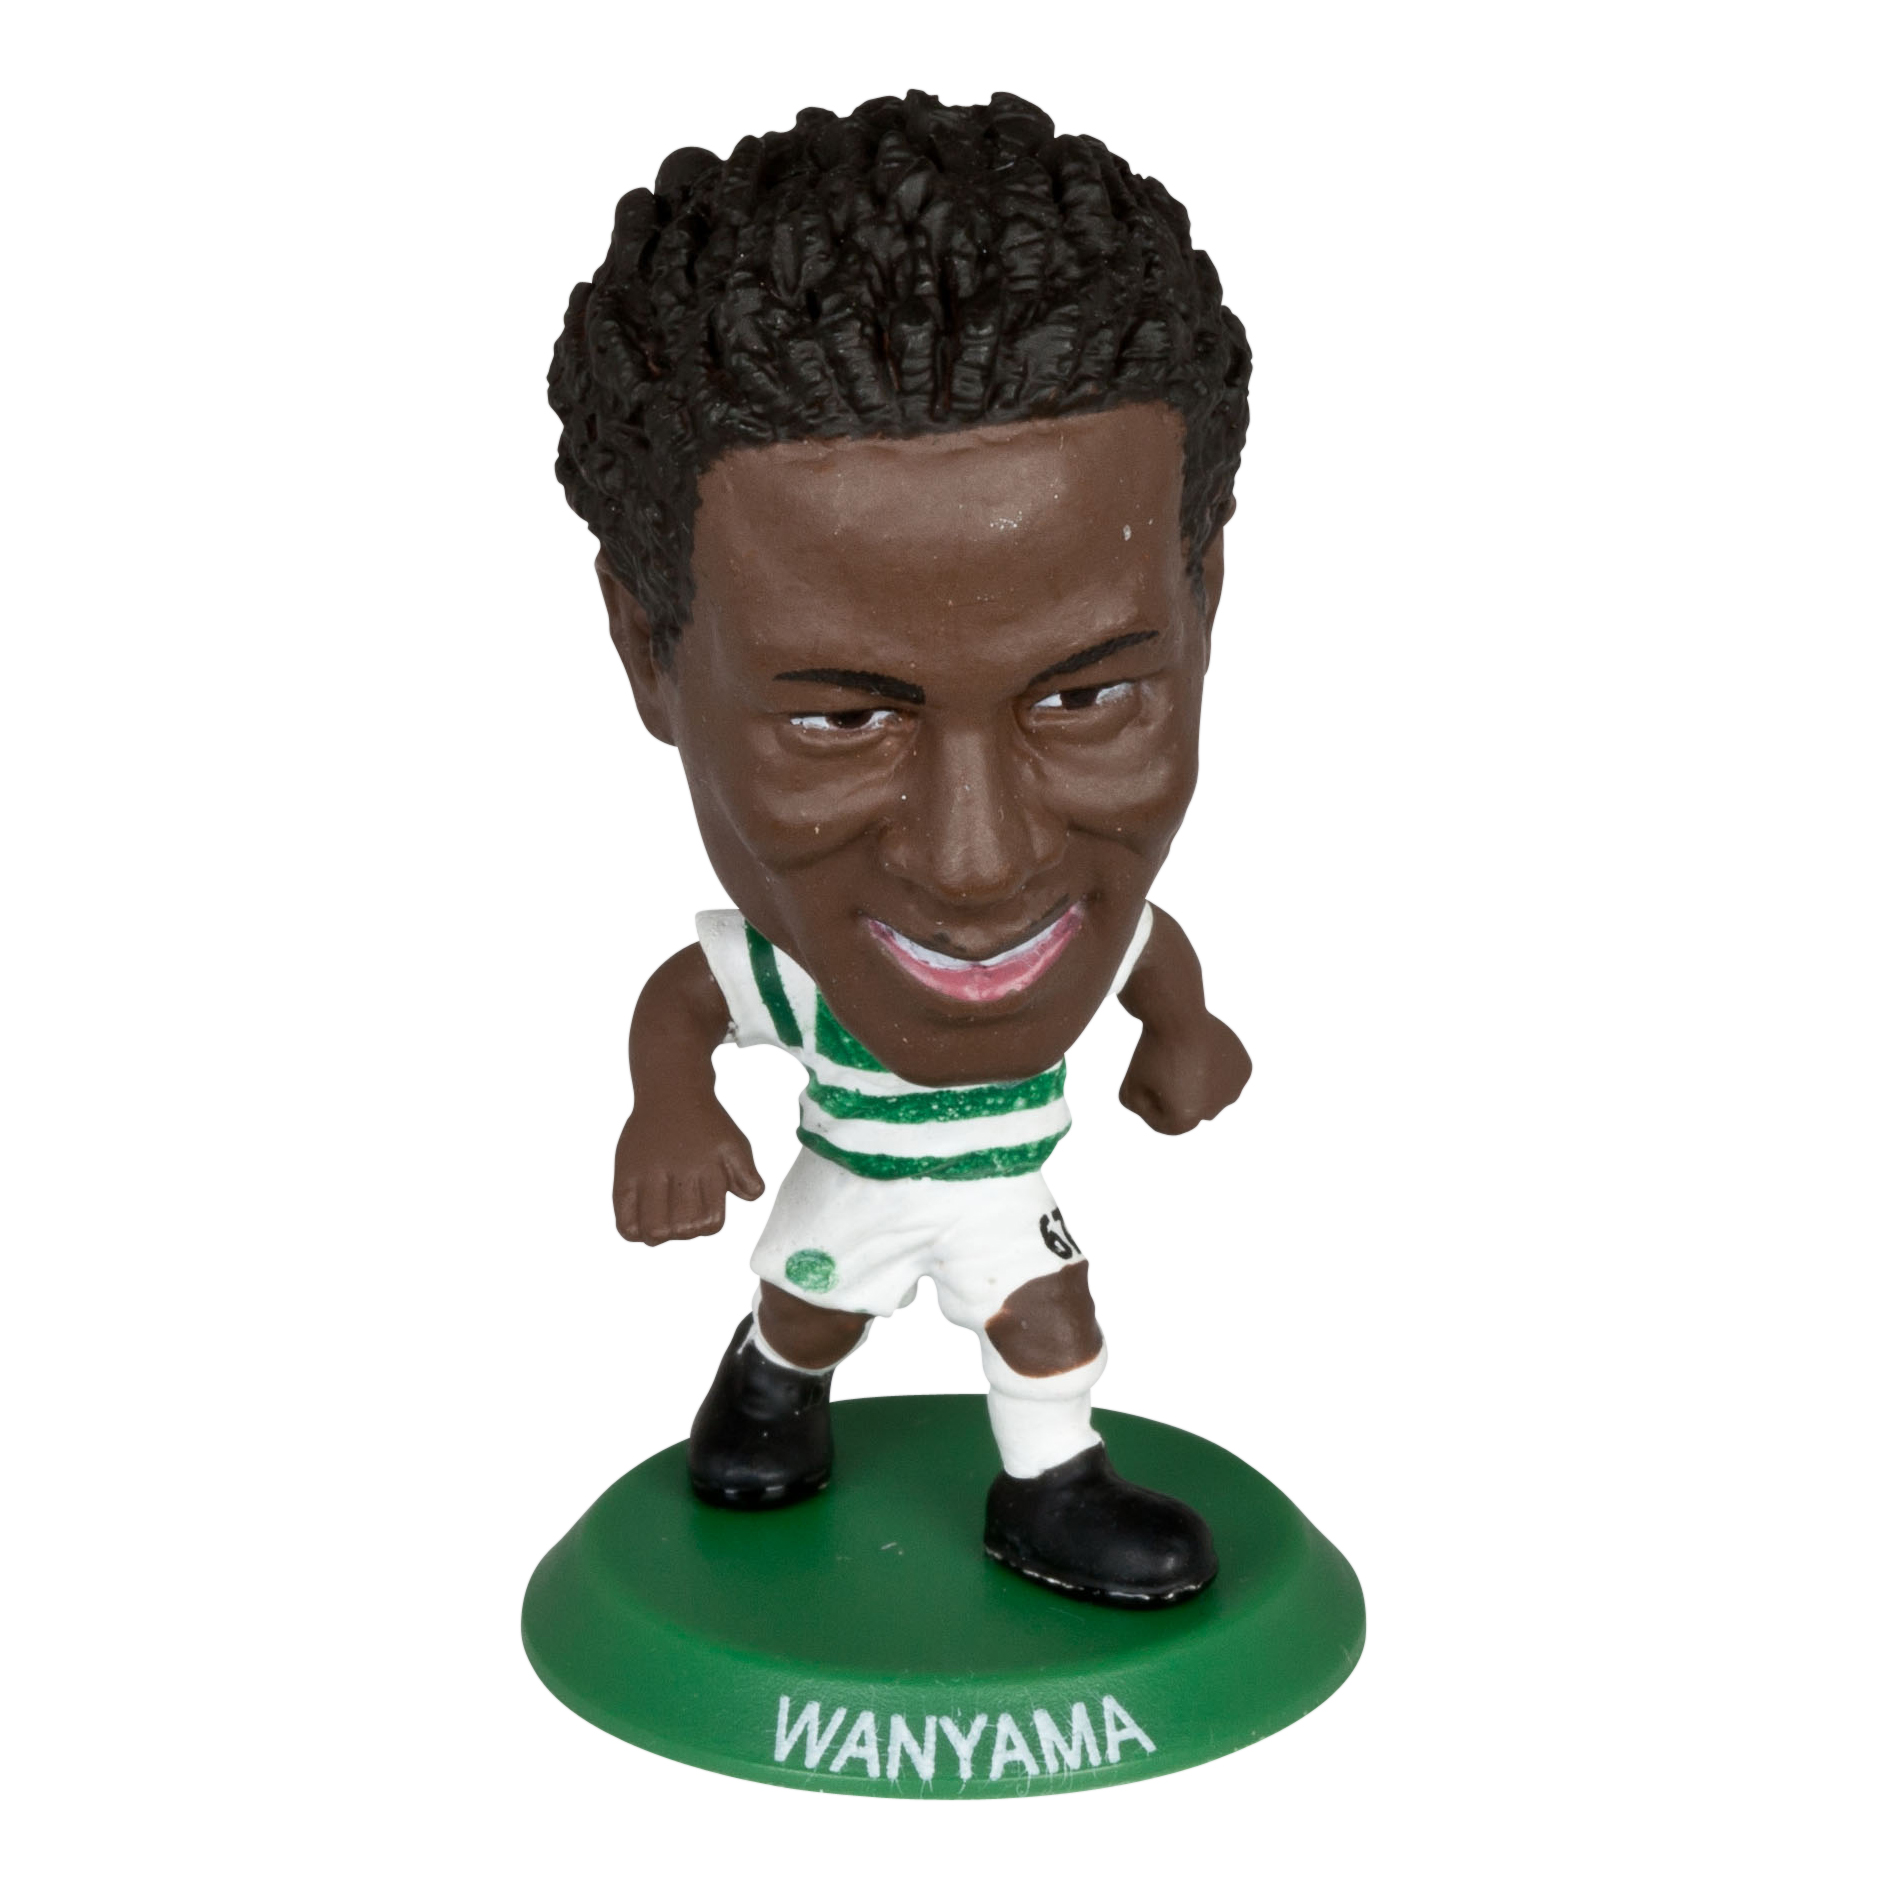 Celtic Wanyama Home Kit 2012/13 Soccer Starz